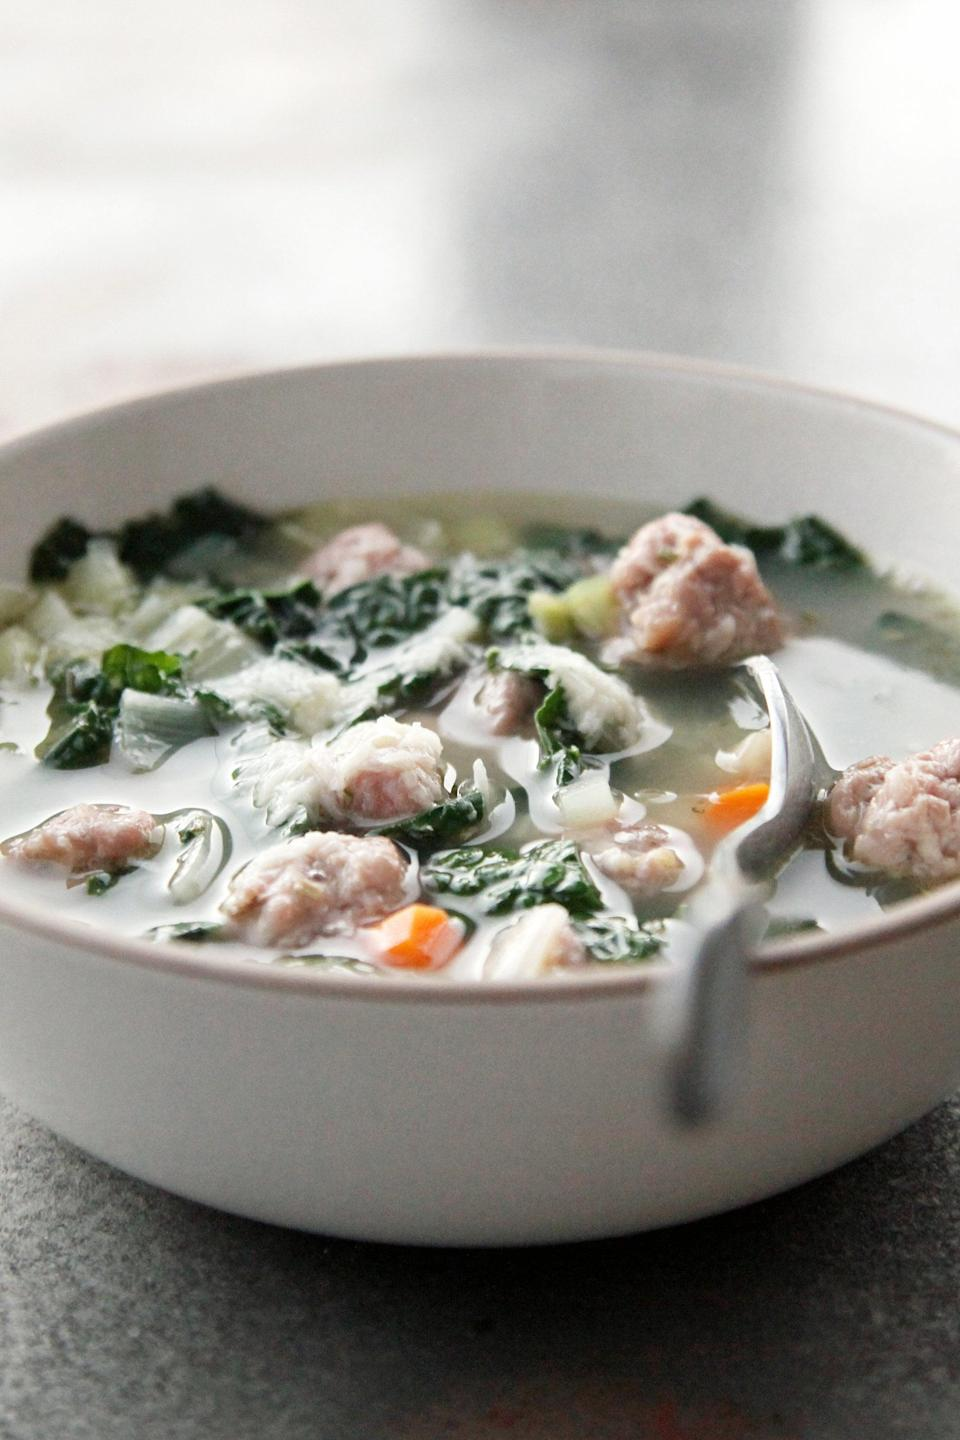 """<p><strong>Get the recipe:</strong> <a href=""""http://www.popsugar.com/food/Italian-Sausage-White-Bean-Kale-Soup-Recipe-7137171/"""" class=""""link rapid-noclick-resp"""" rel=""""nofollow noopener"""" target=""""_blank"""" data-ylk=""""slk:Italian sausage, white bean, and kale soup"""">Italian sausage, white bean, and kale soup</a><br> <strong>Cans needed:</strong> cannellini beans</p>"""